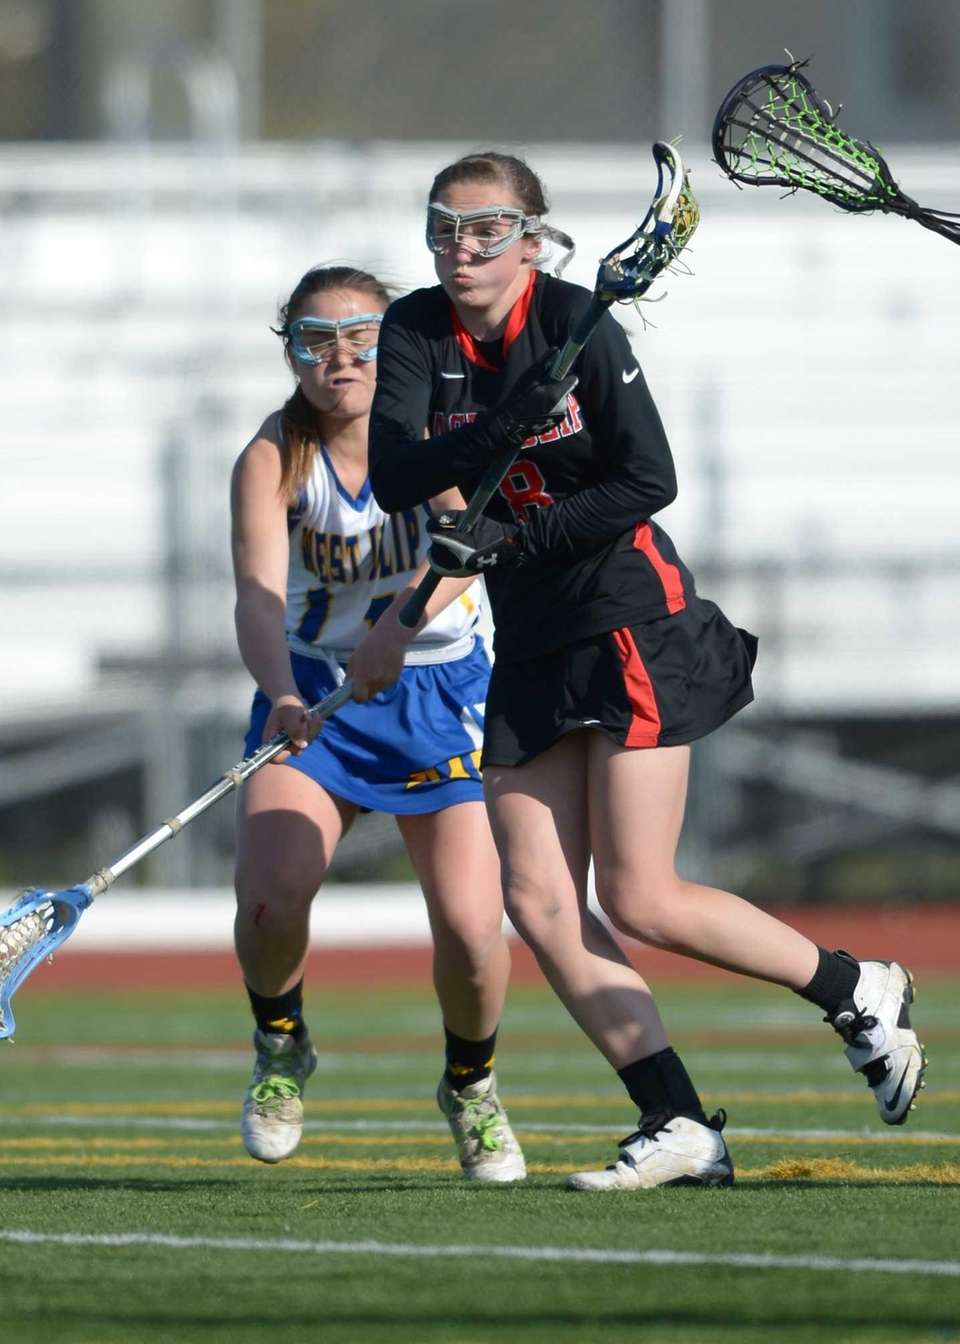 East Islip's Valerie Pelling (8) moves toward the